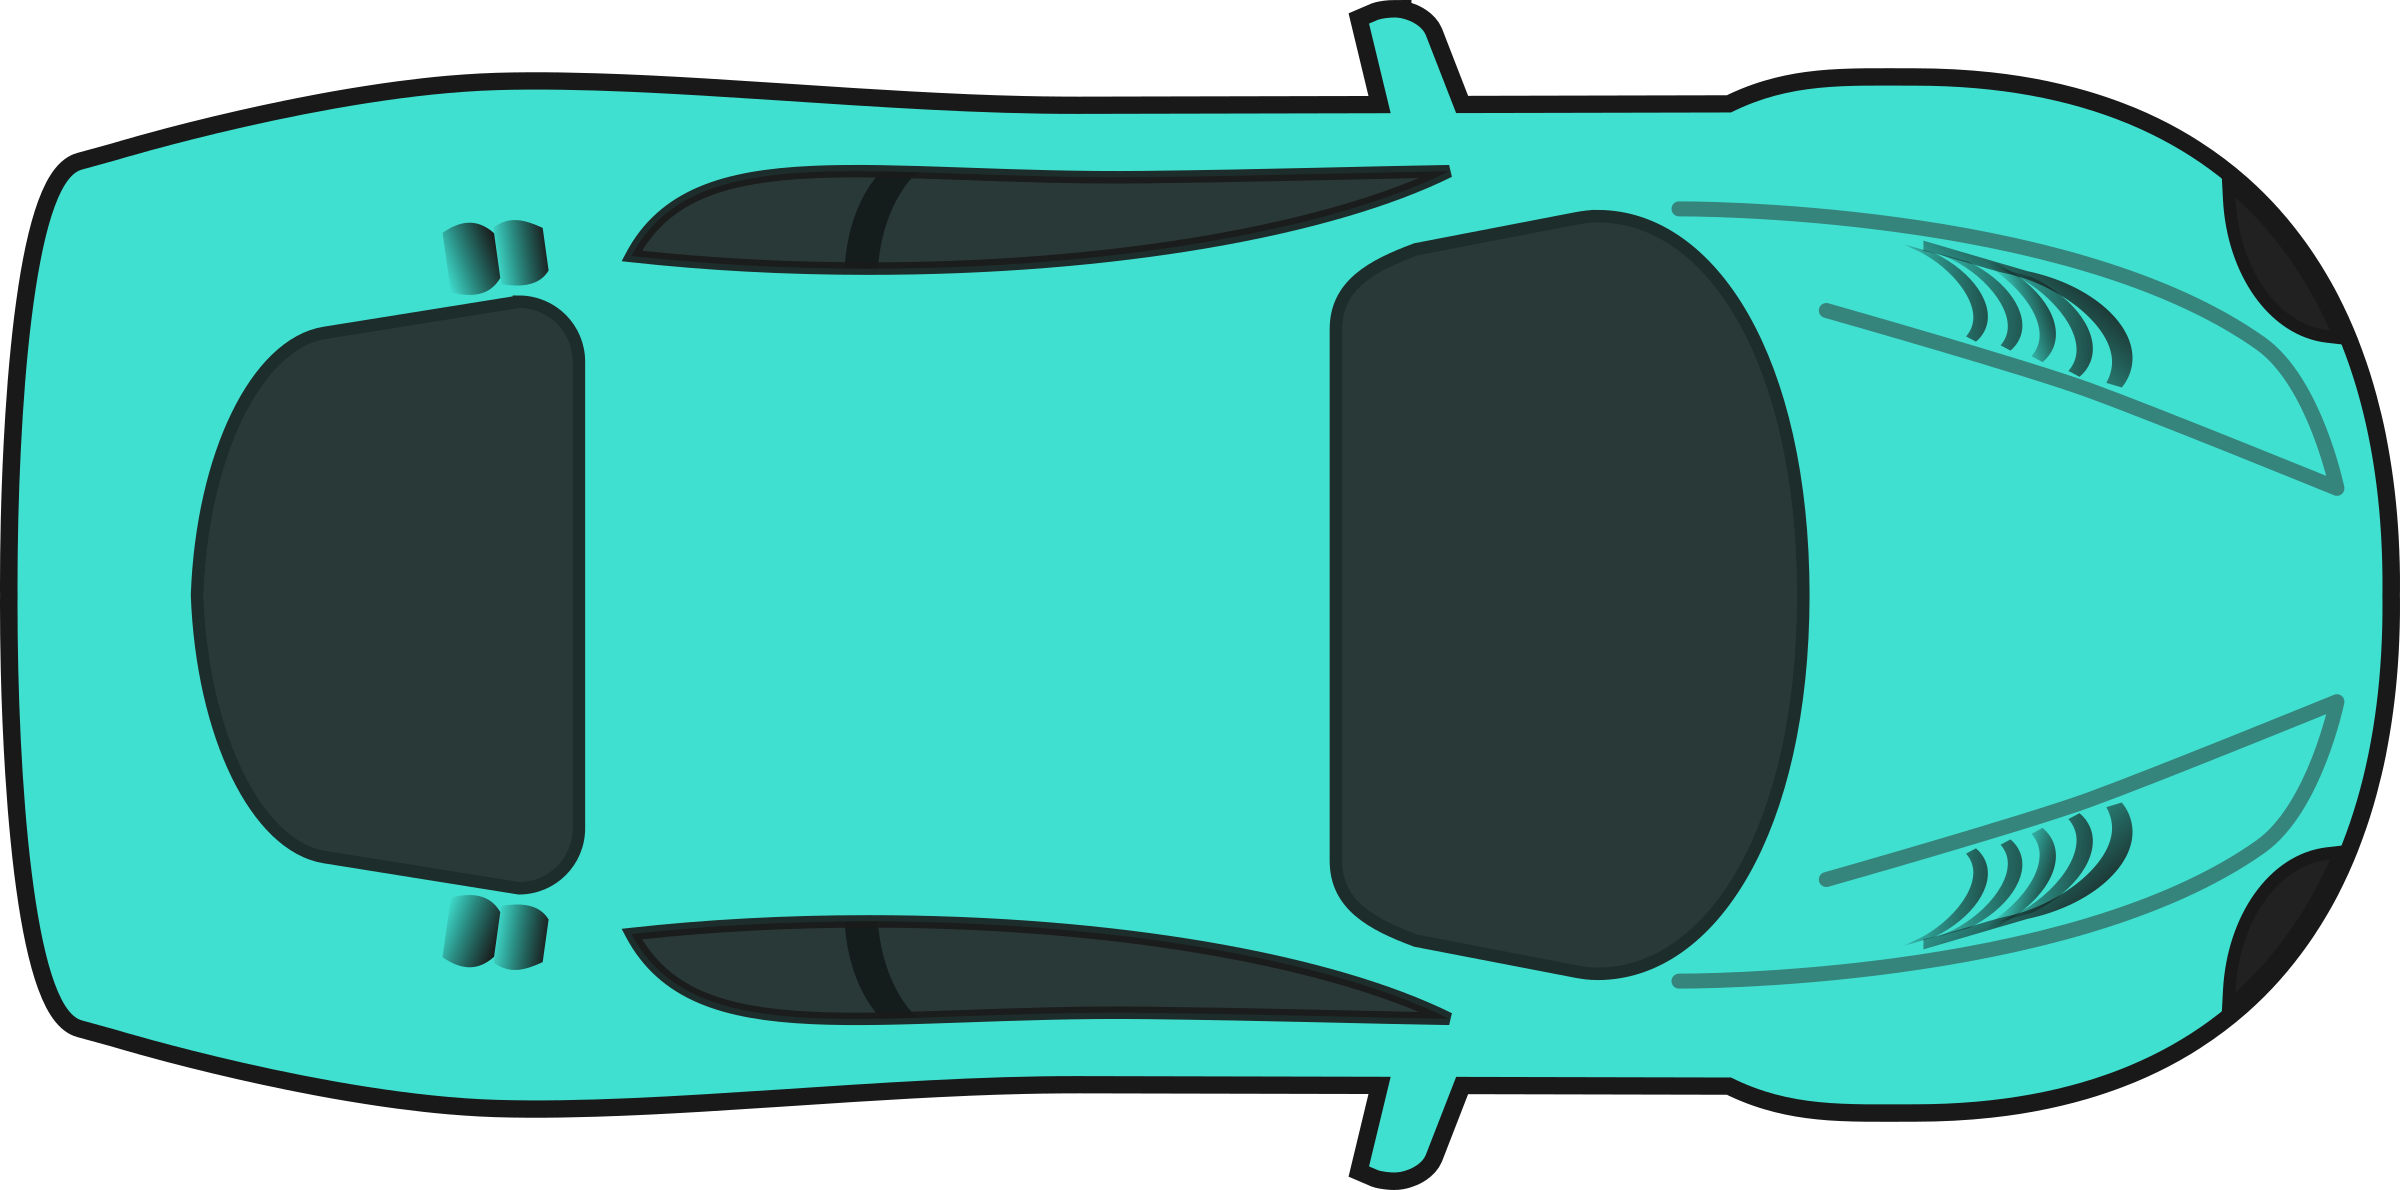 Car top view clipart graphic library download Clipart - Turquois Racing Car (Top View) graphic library download